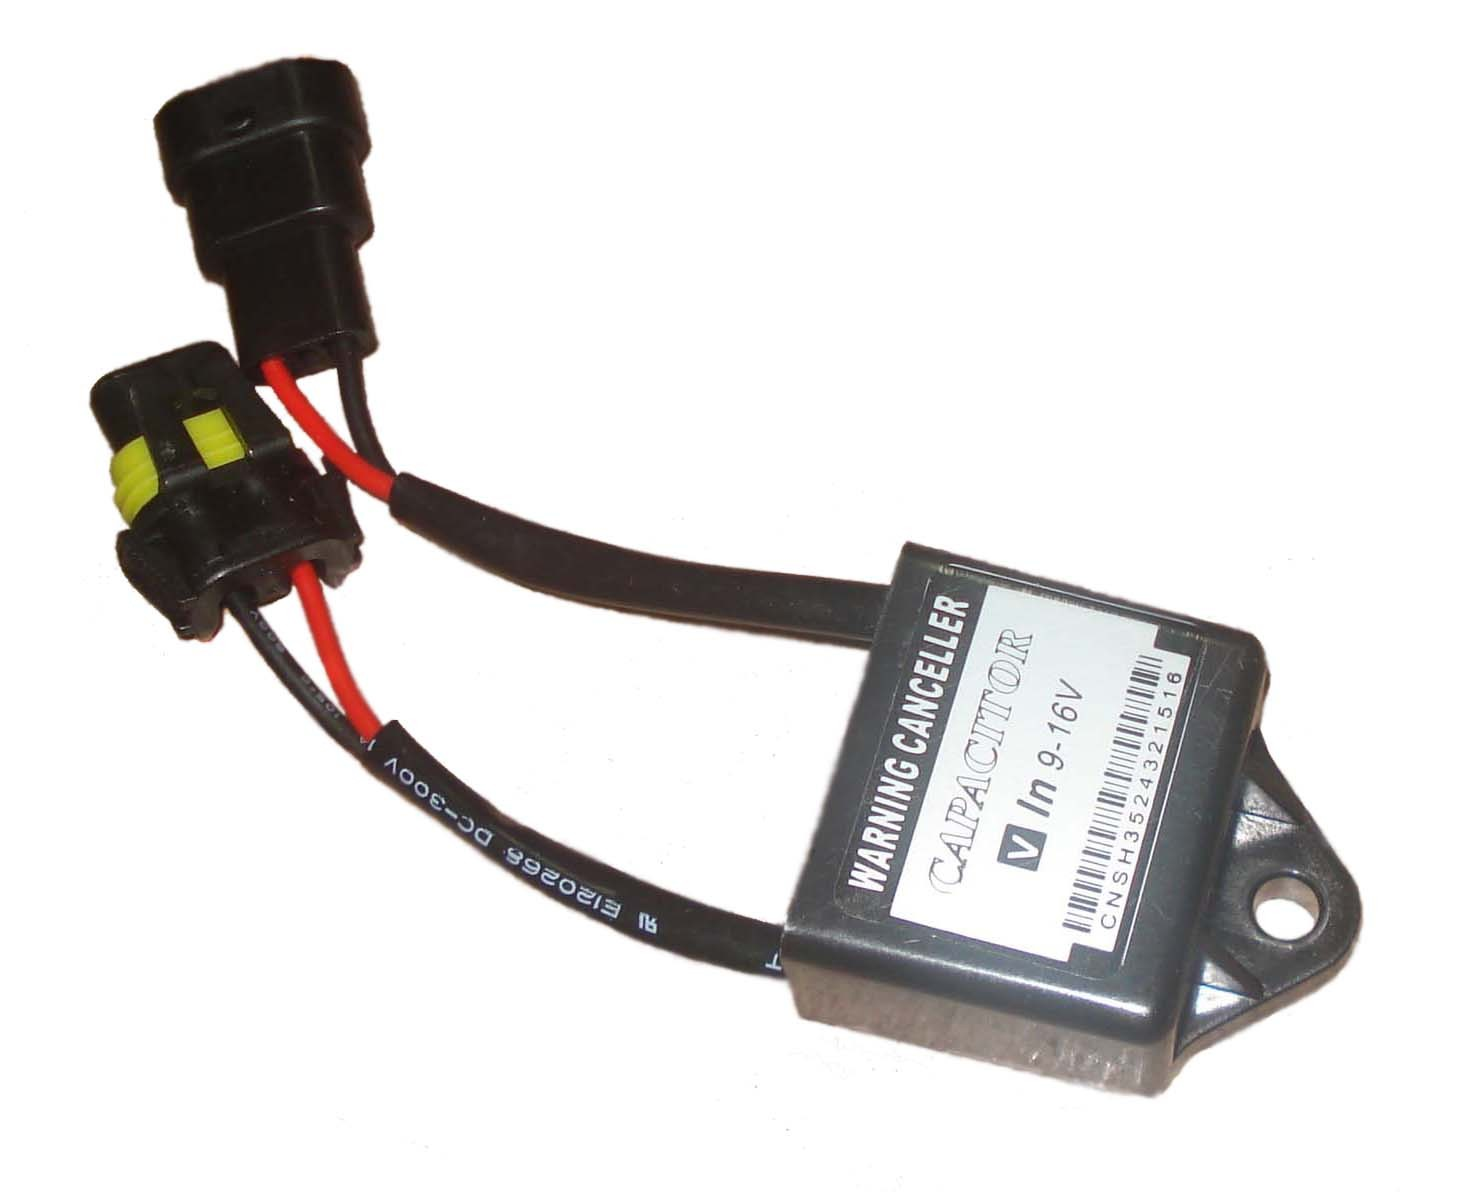 Best Relay For Hid Install You Will Note That Most Of The Bosch Relays Have A Diagram On Side Warning Canceller